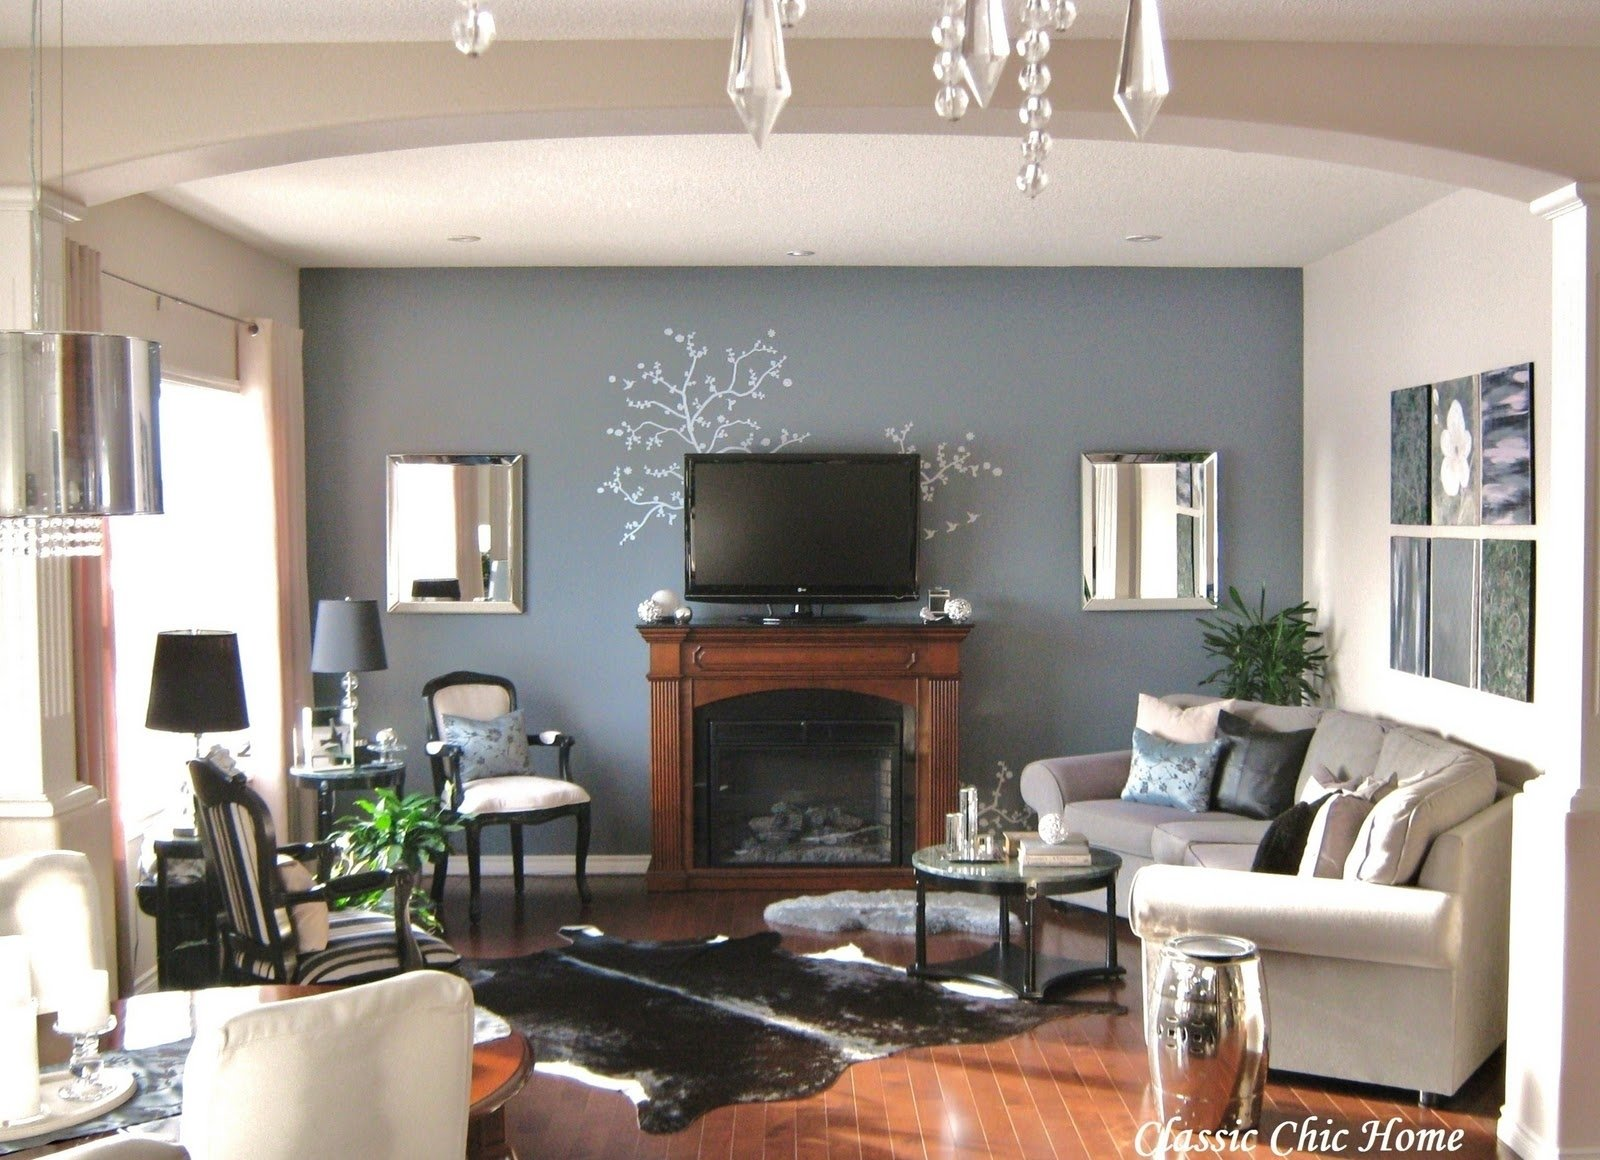 10 Unique Living Room With Fireplace Decorating Ideas living room with fireplace design ideas fireplace design ideas